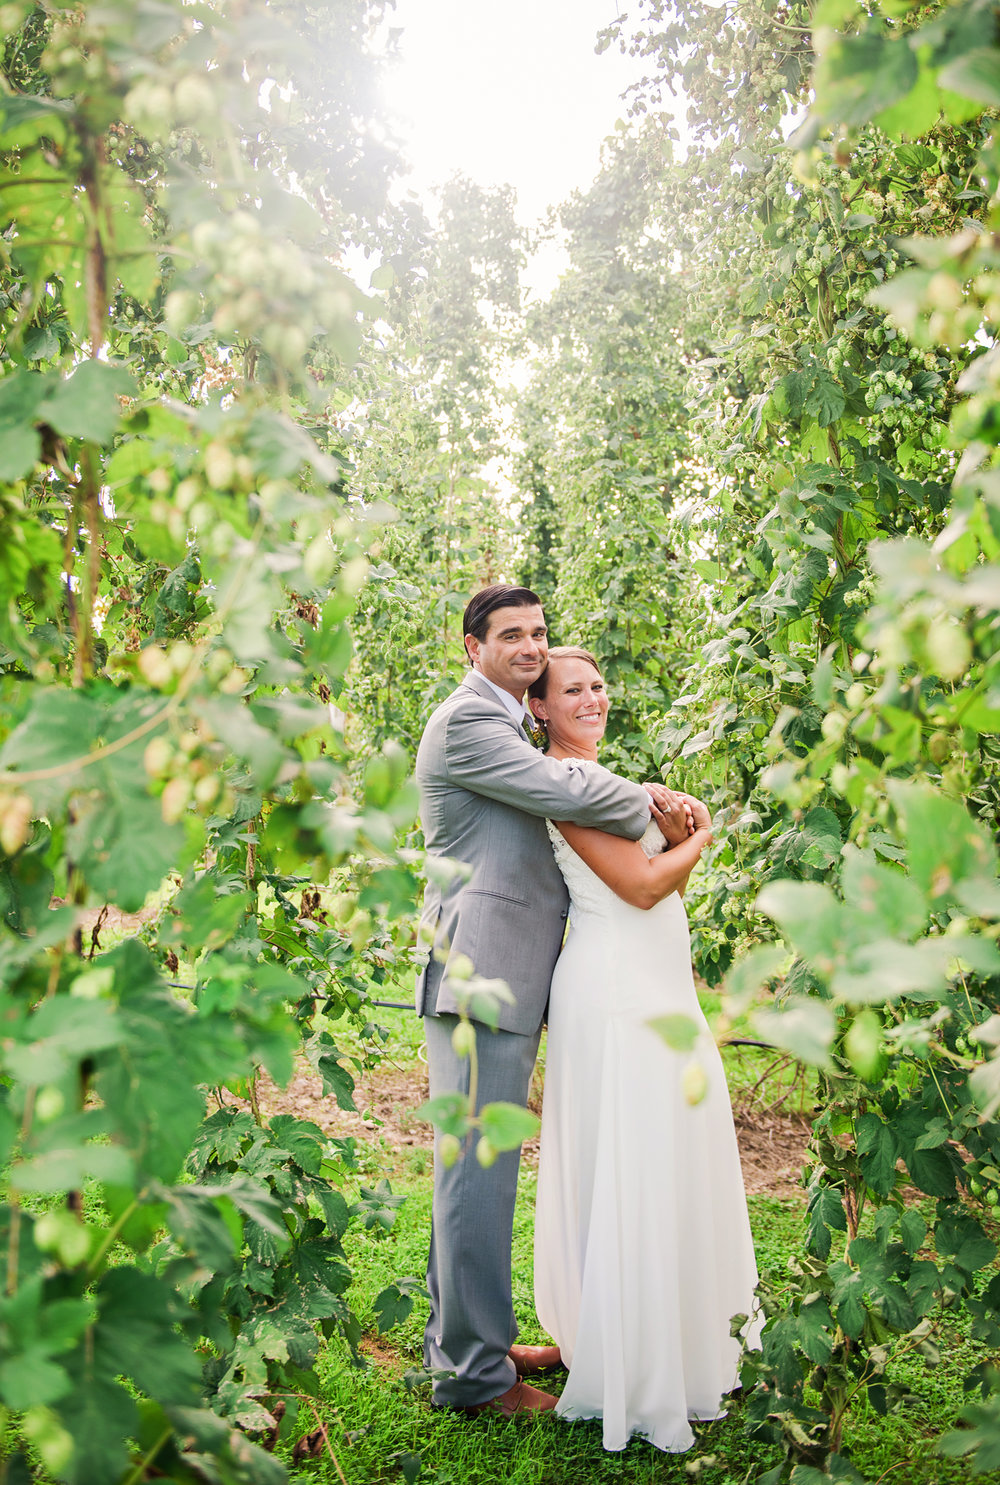 Climbing_Bines_Finger_Lakes_Wedding_JILL_STUDIO_Rochester_NY_Photographer_170015.jpg